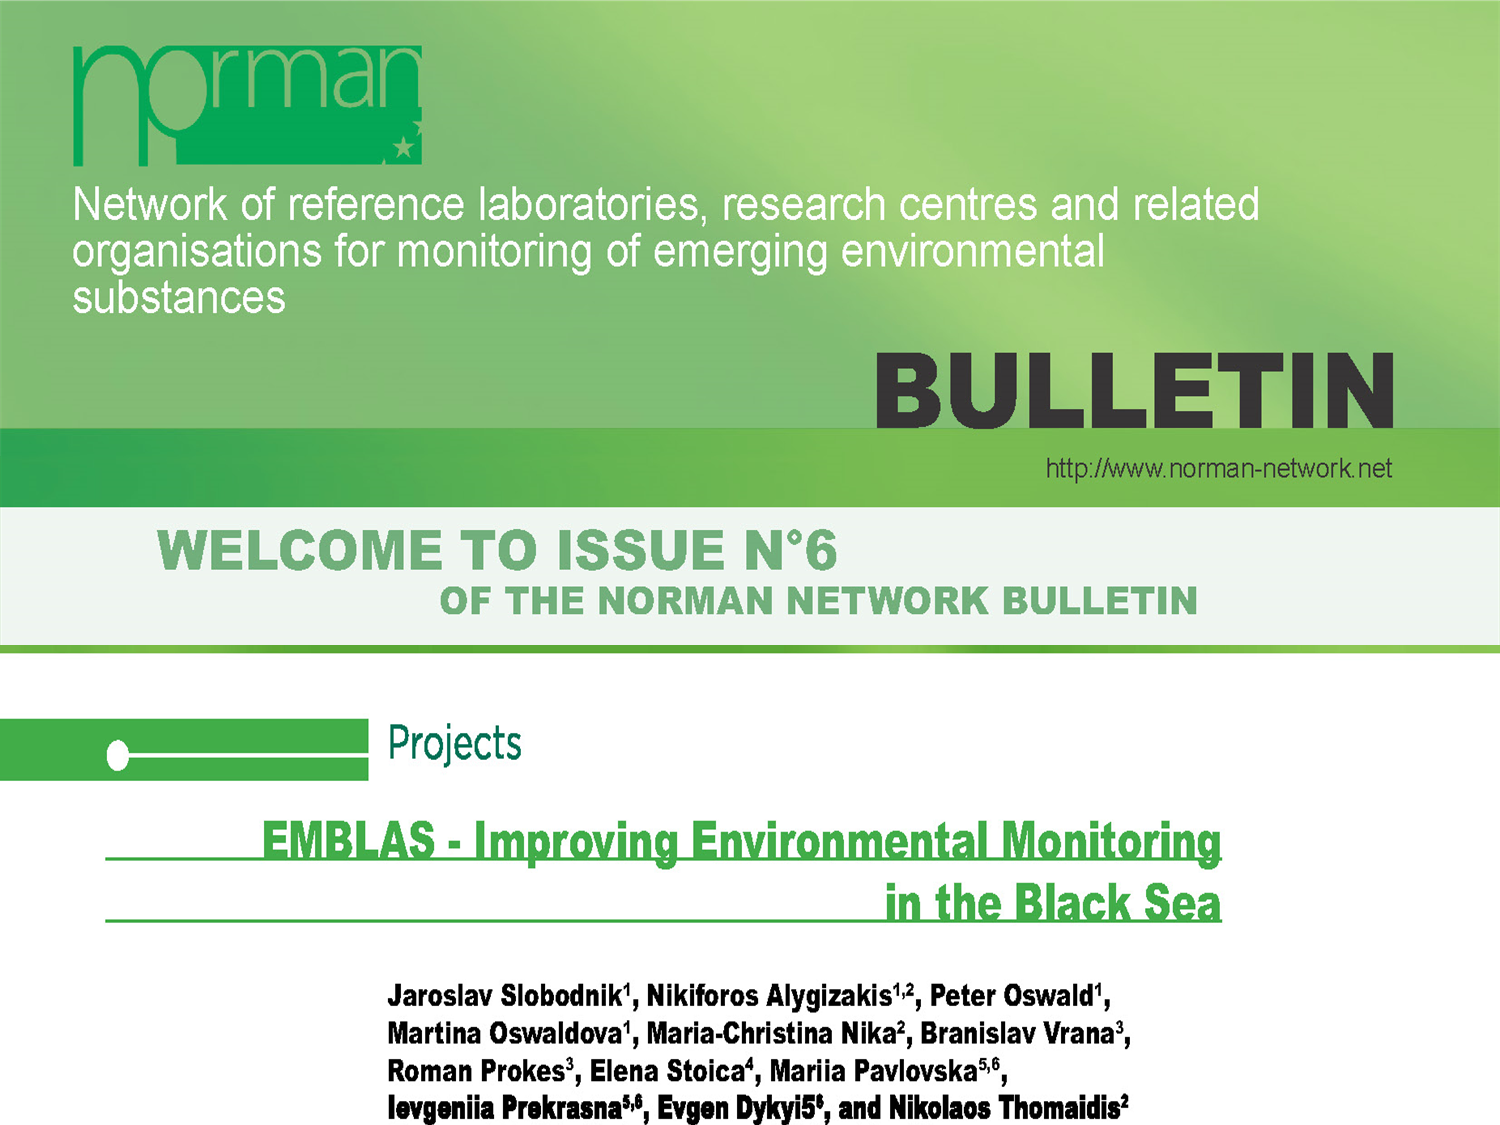 A NEW SCIENTIFIC ARTICLE ABOUT OUR PROJECT IS PUBLISHED